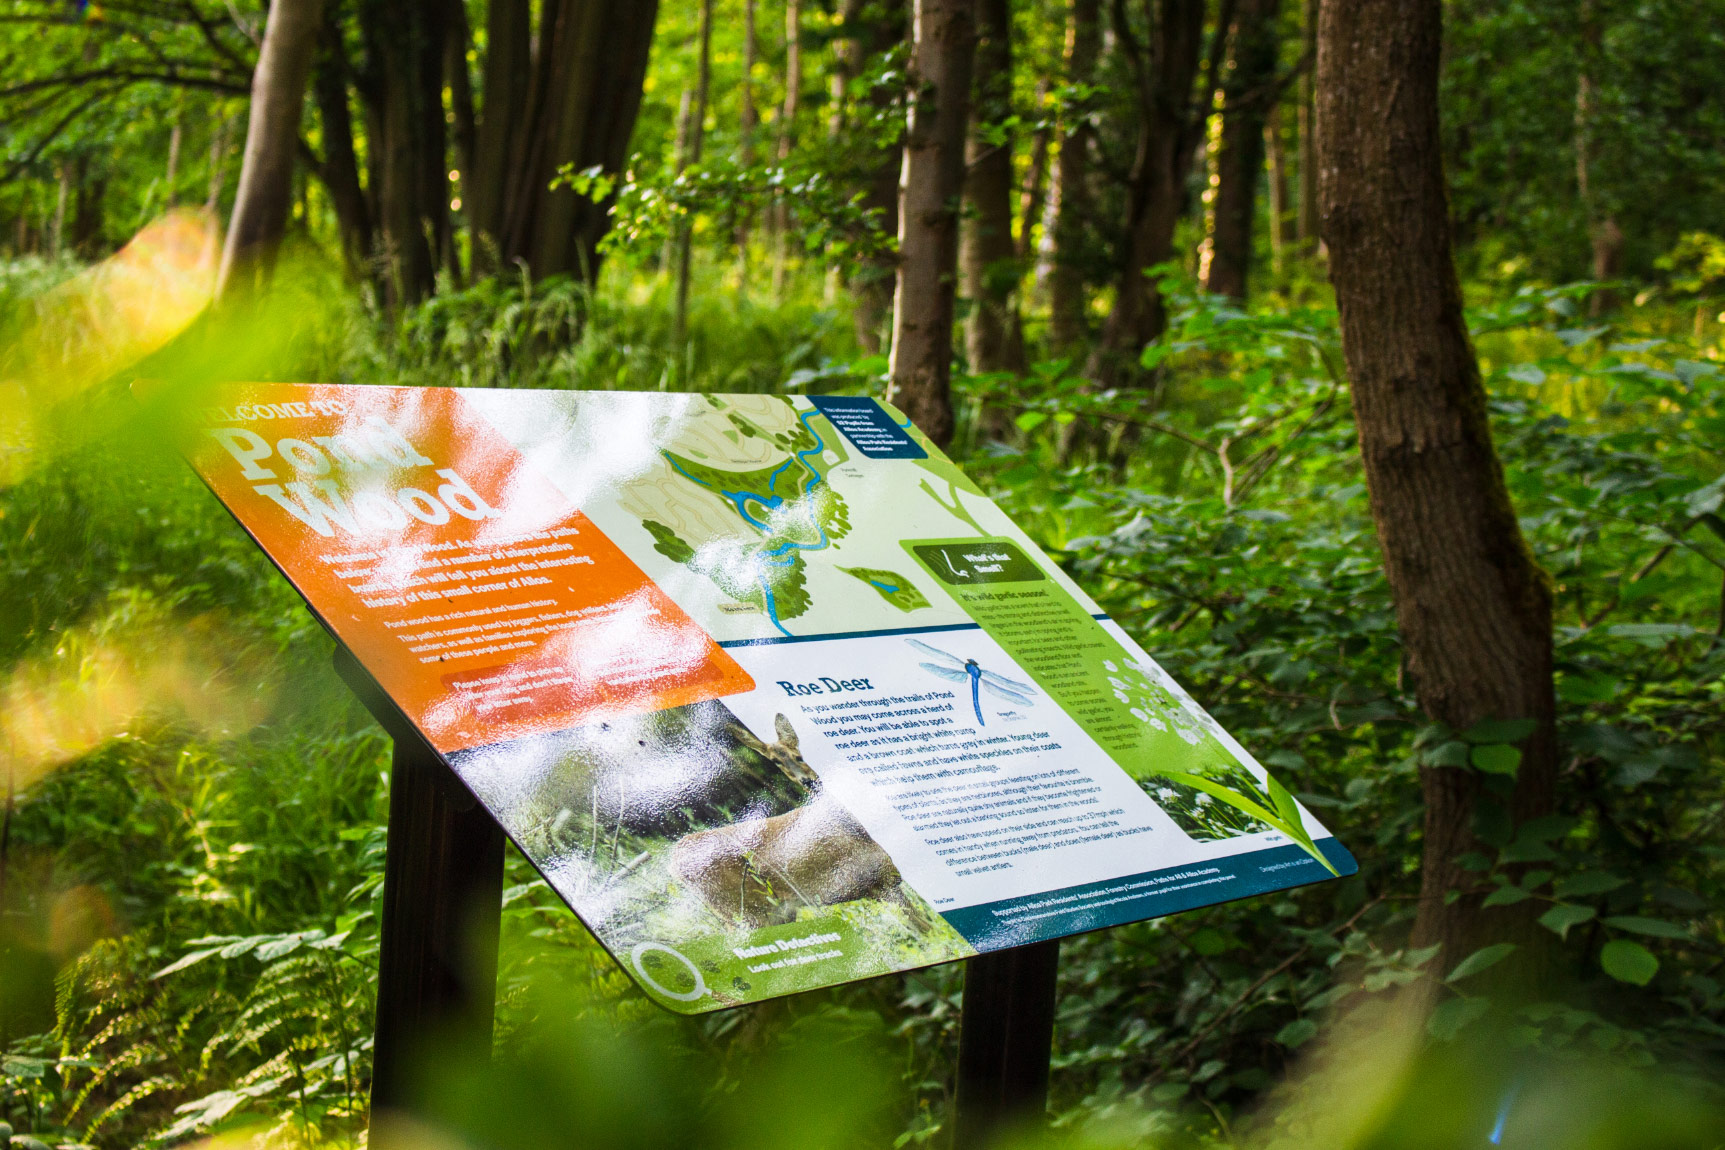 This is an image of an interpretation Display Panel located at Pond Wood Alloa. The panel shows various wildlife from the area and historical information.